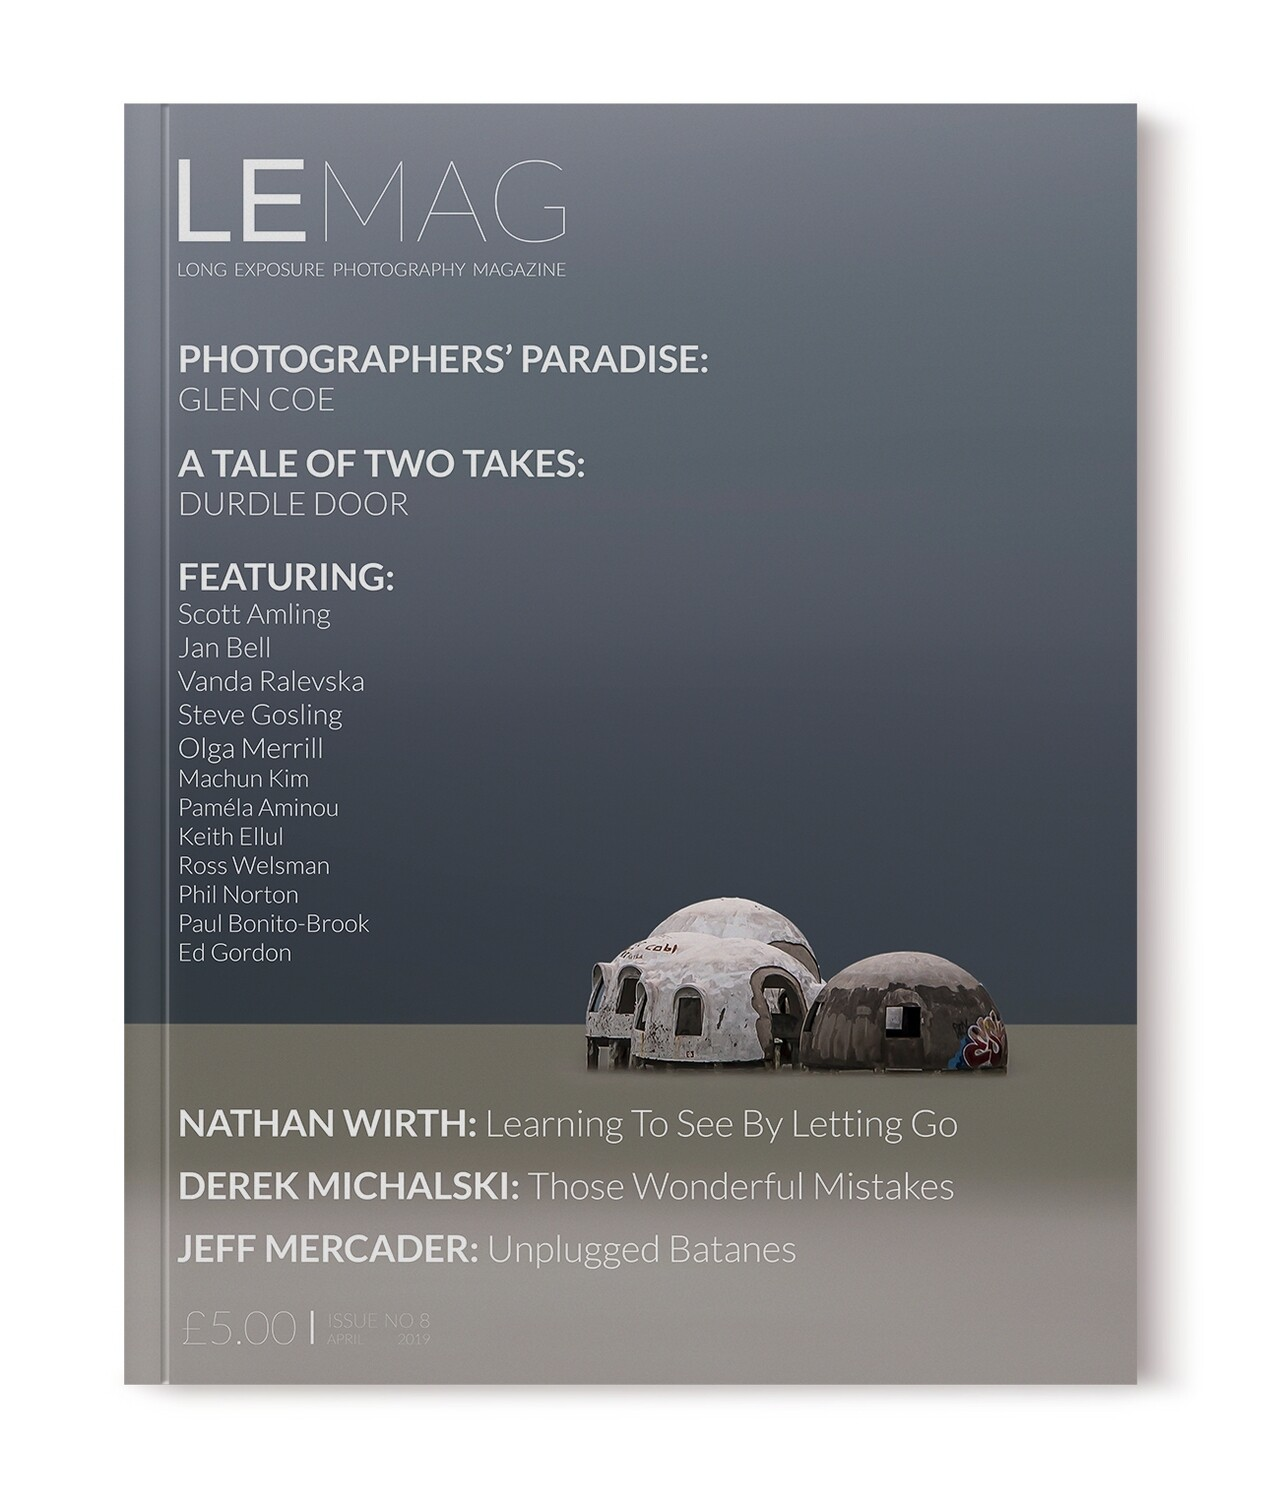 LEMAG April 2019 issue